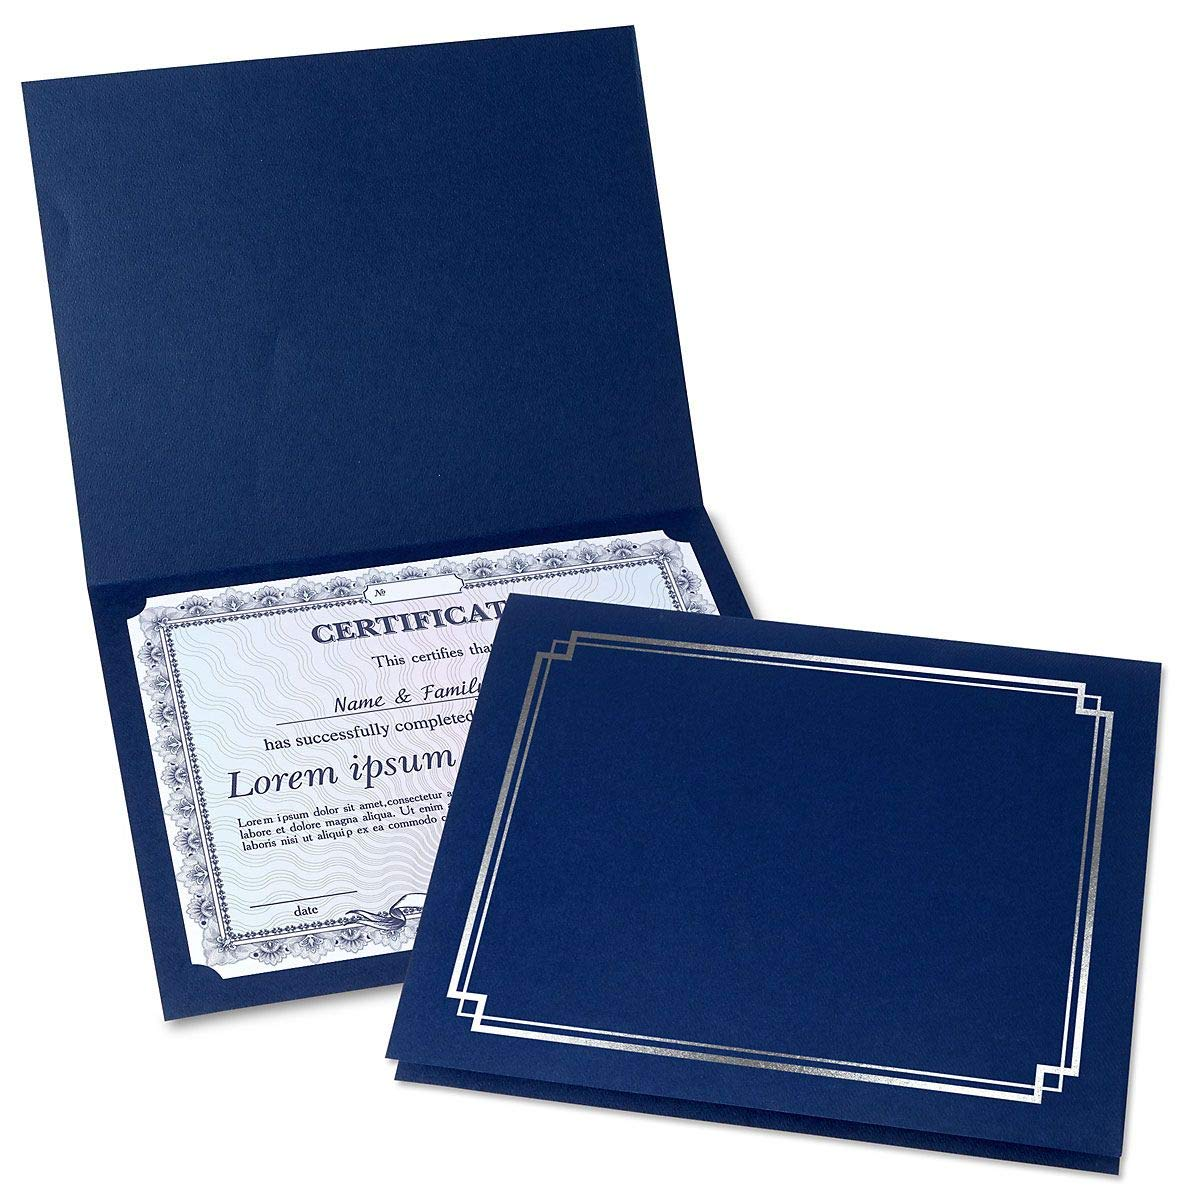 Classic Blue Certificate Folder with Silver Border - Set of 25, 9-1/2'' x 12'' Folded with Diecut Corners, 80 lb. Linen Cover Stock, Document Cover, Diploma Holder, Letter Sized Awards, Congratulations by Fine Stationery